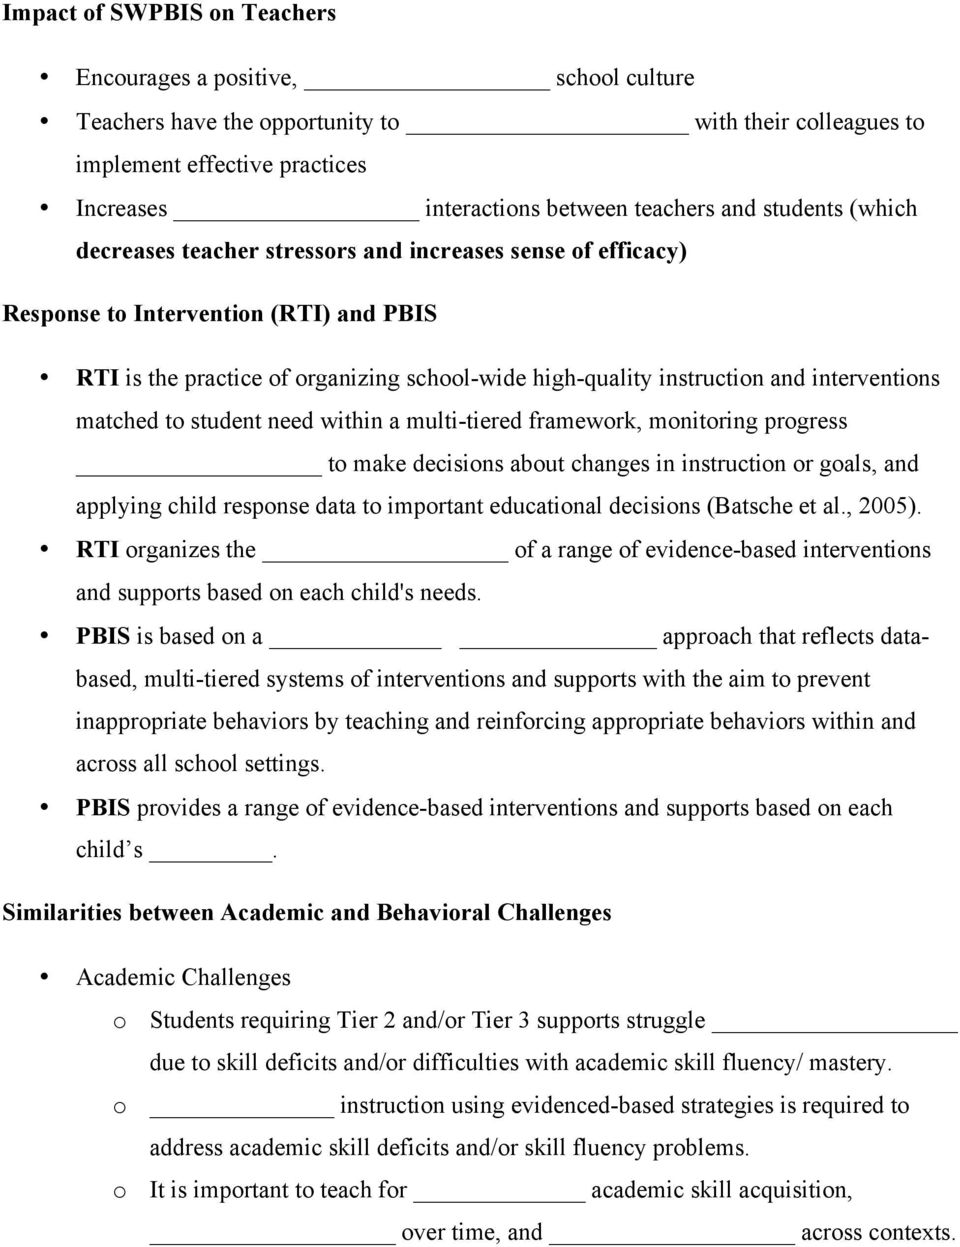 interventions matched to student need within a multi-tiered framework, monitoring progress to make decisions about changes in instruction or goals, and applying child response data to important